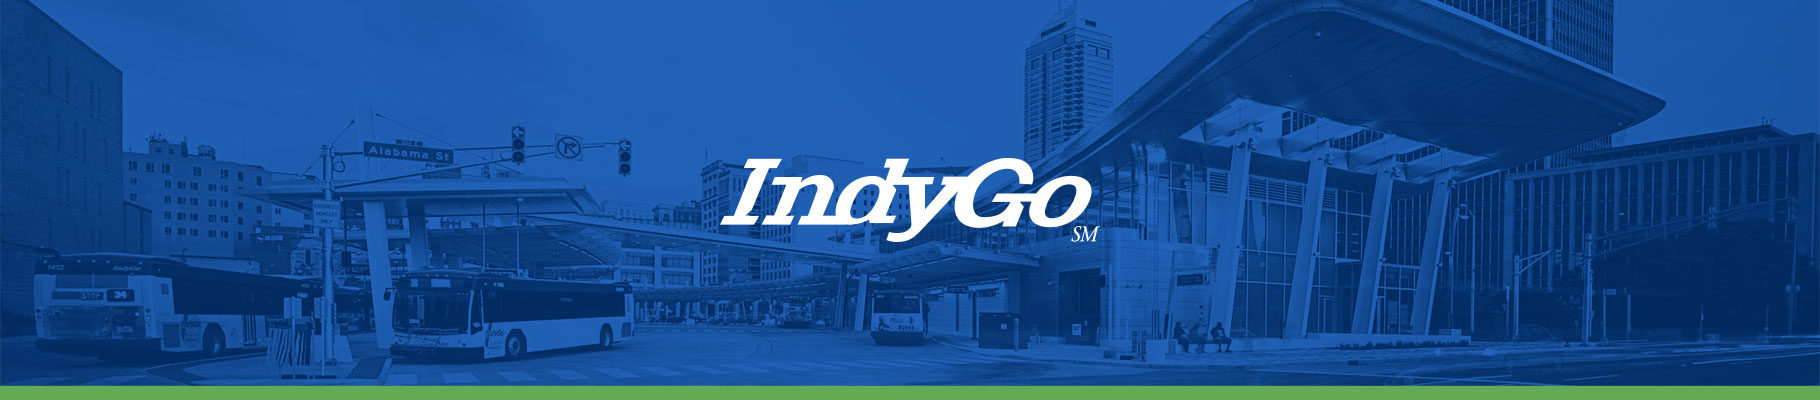 IndyGo logo with a bus stop in the background